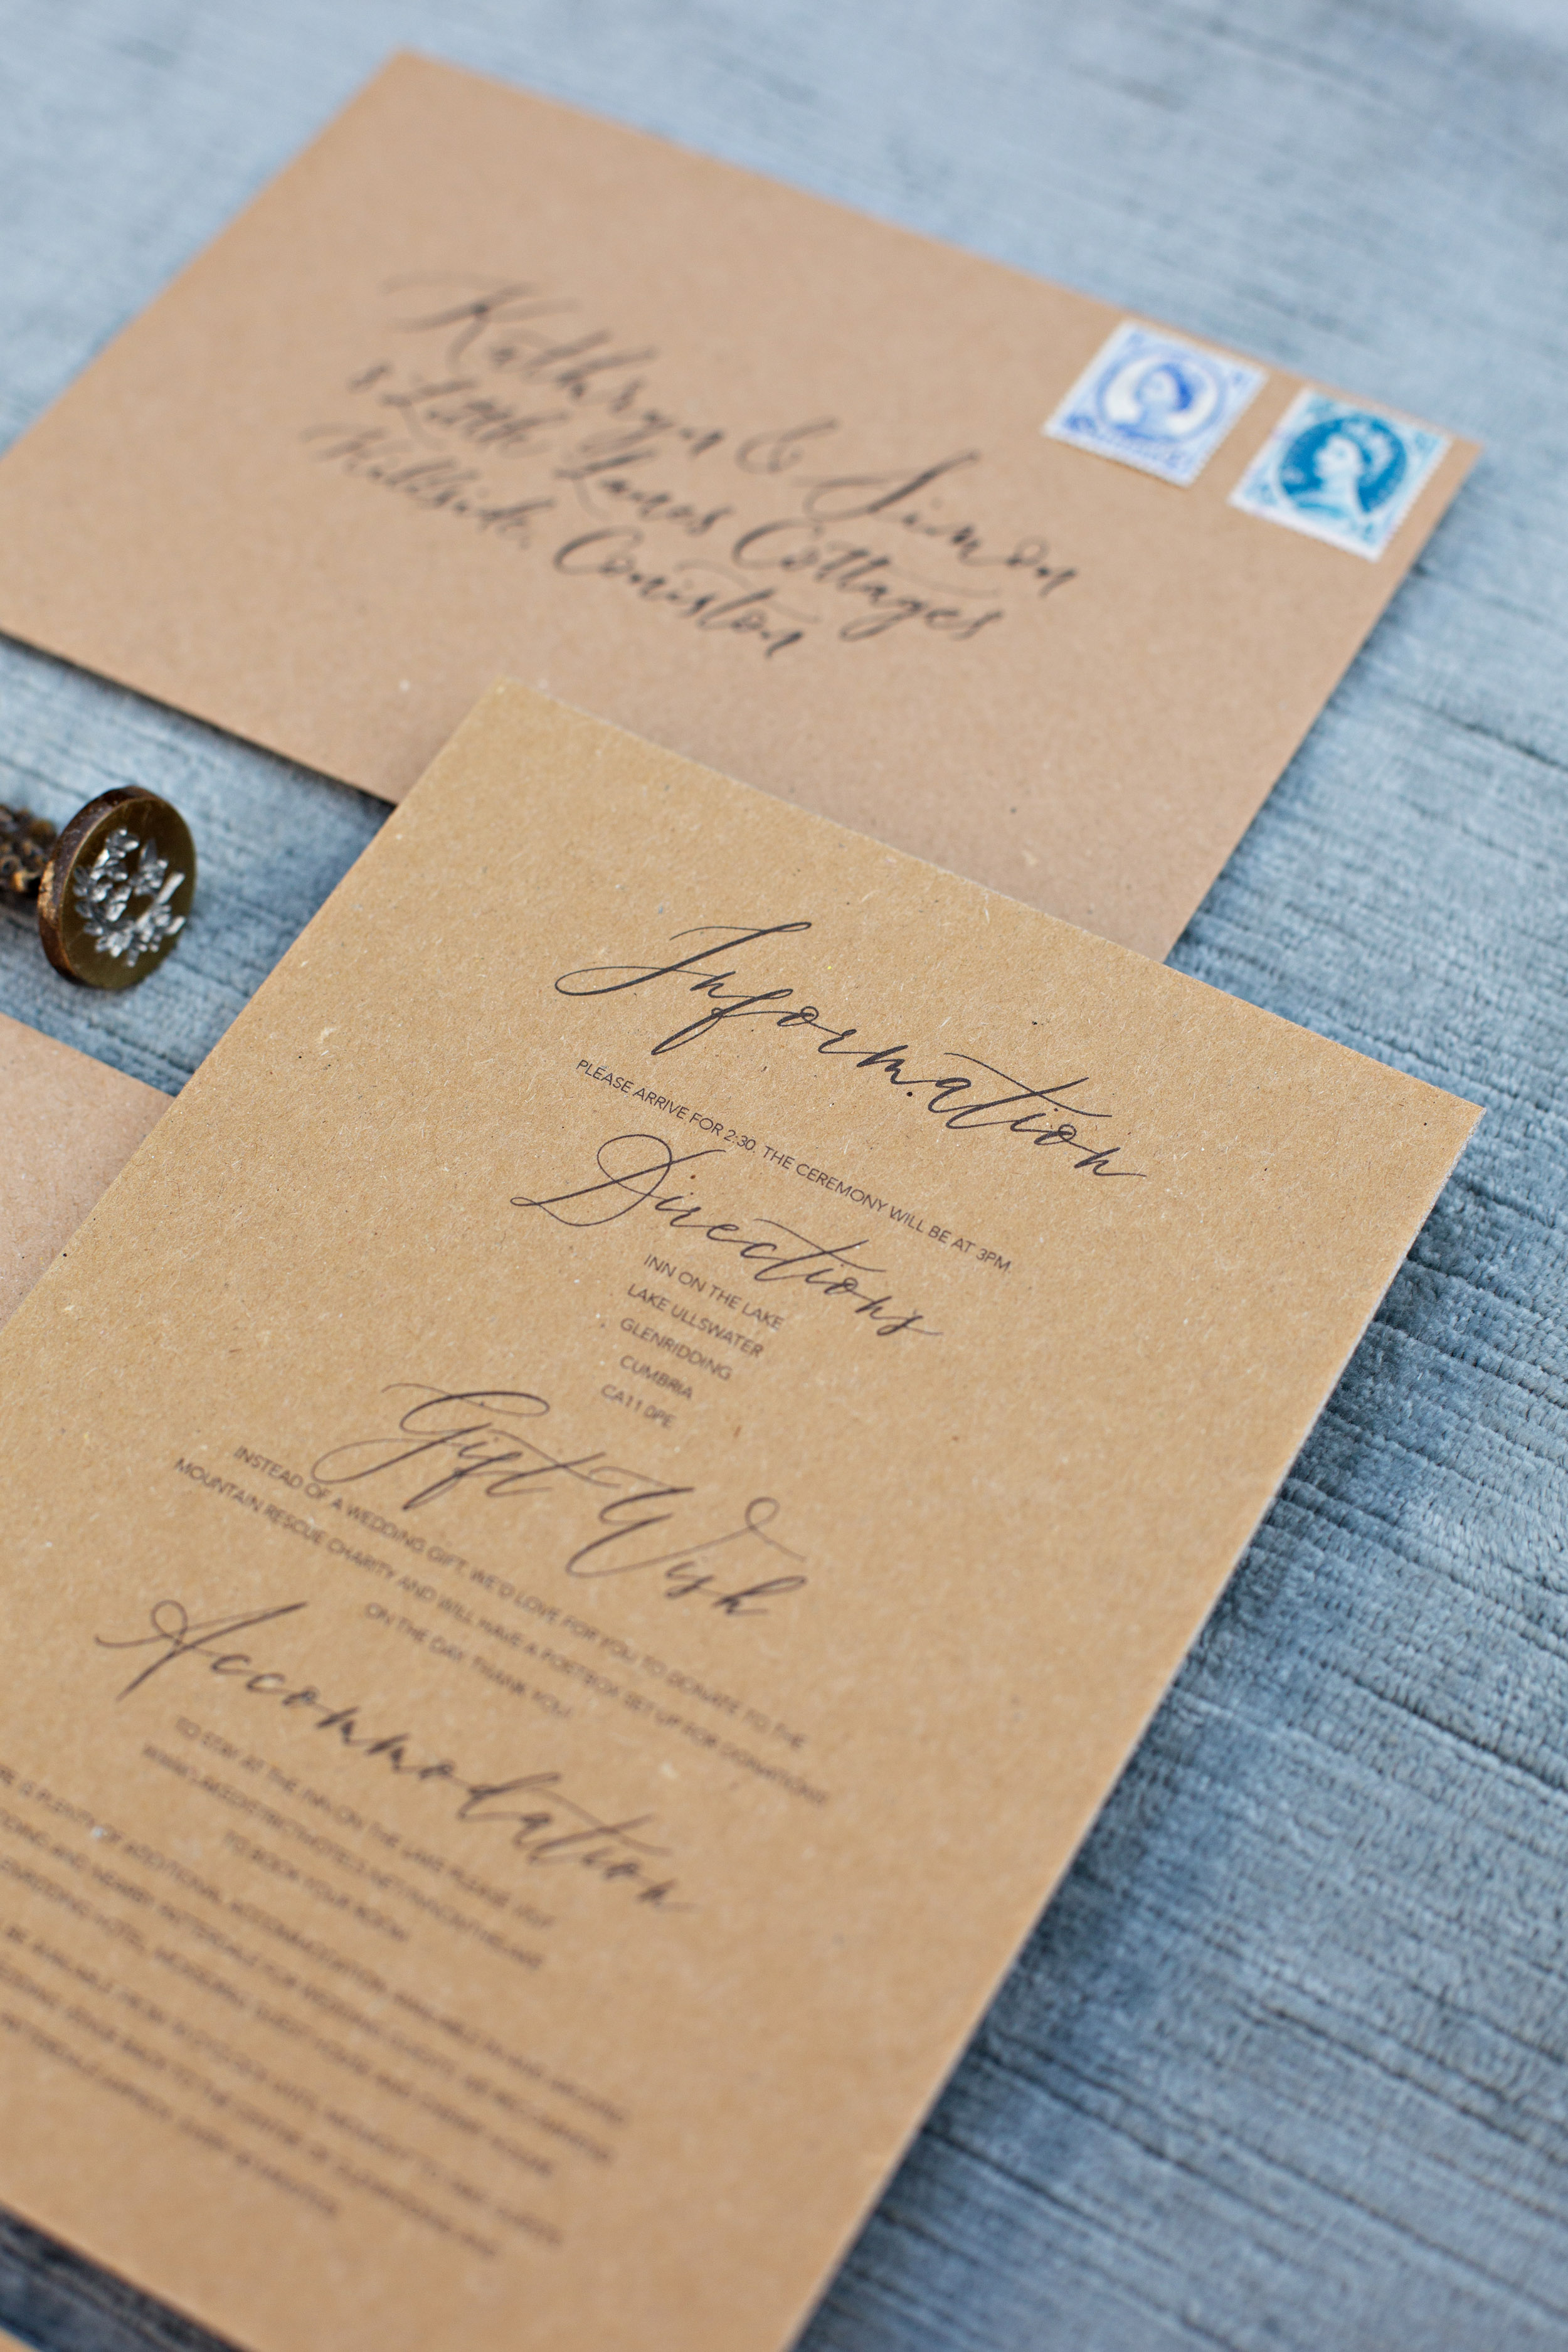 Rustic elegance sustainable wedding stationery from By Moon and Tide Calligraphy, photography credit Jess Reeve (7)